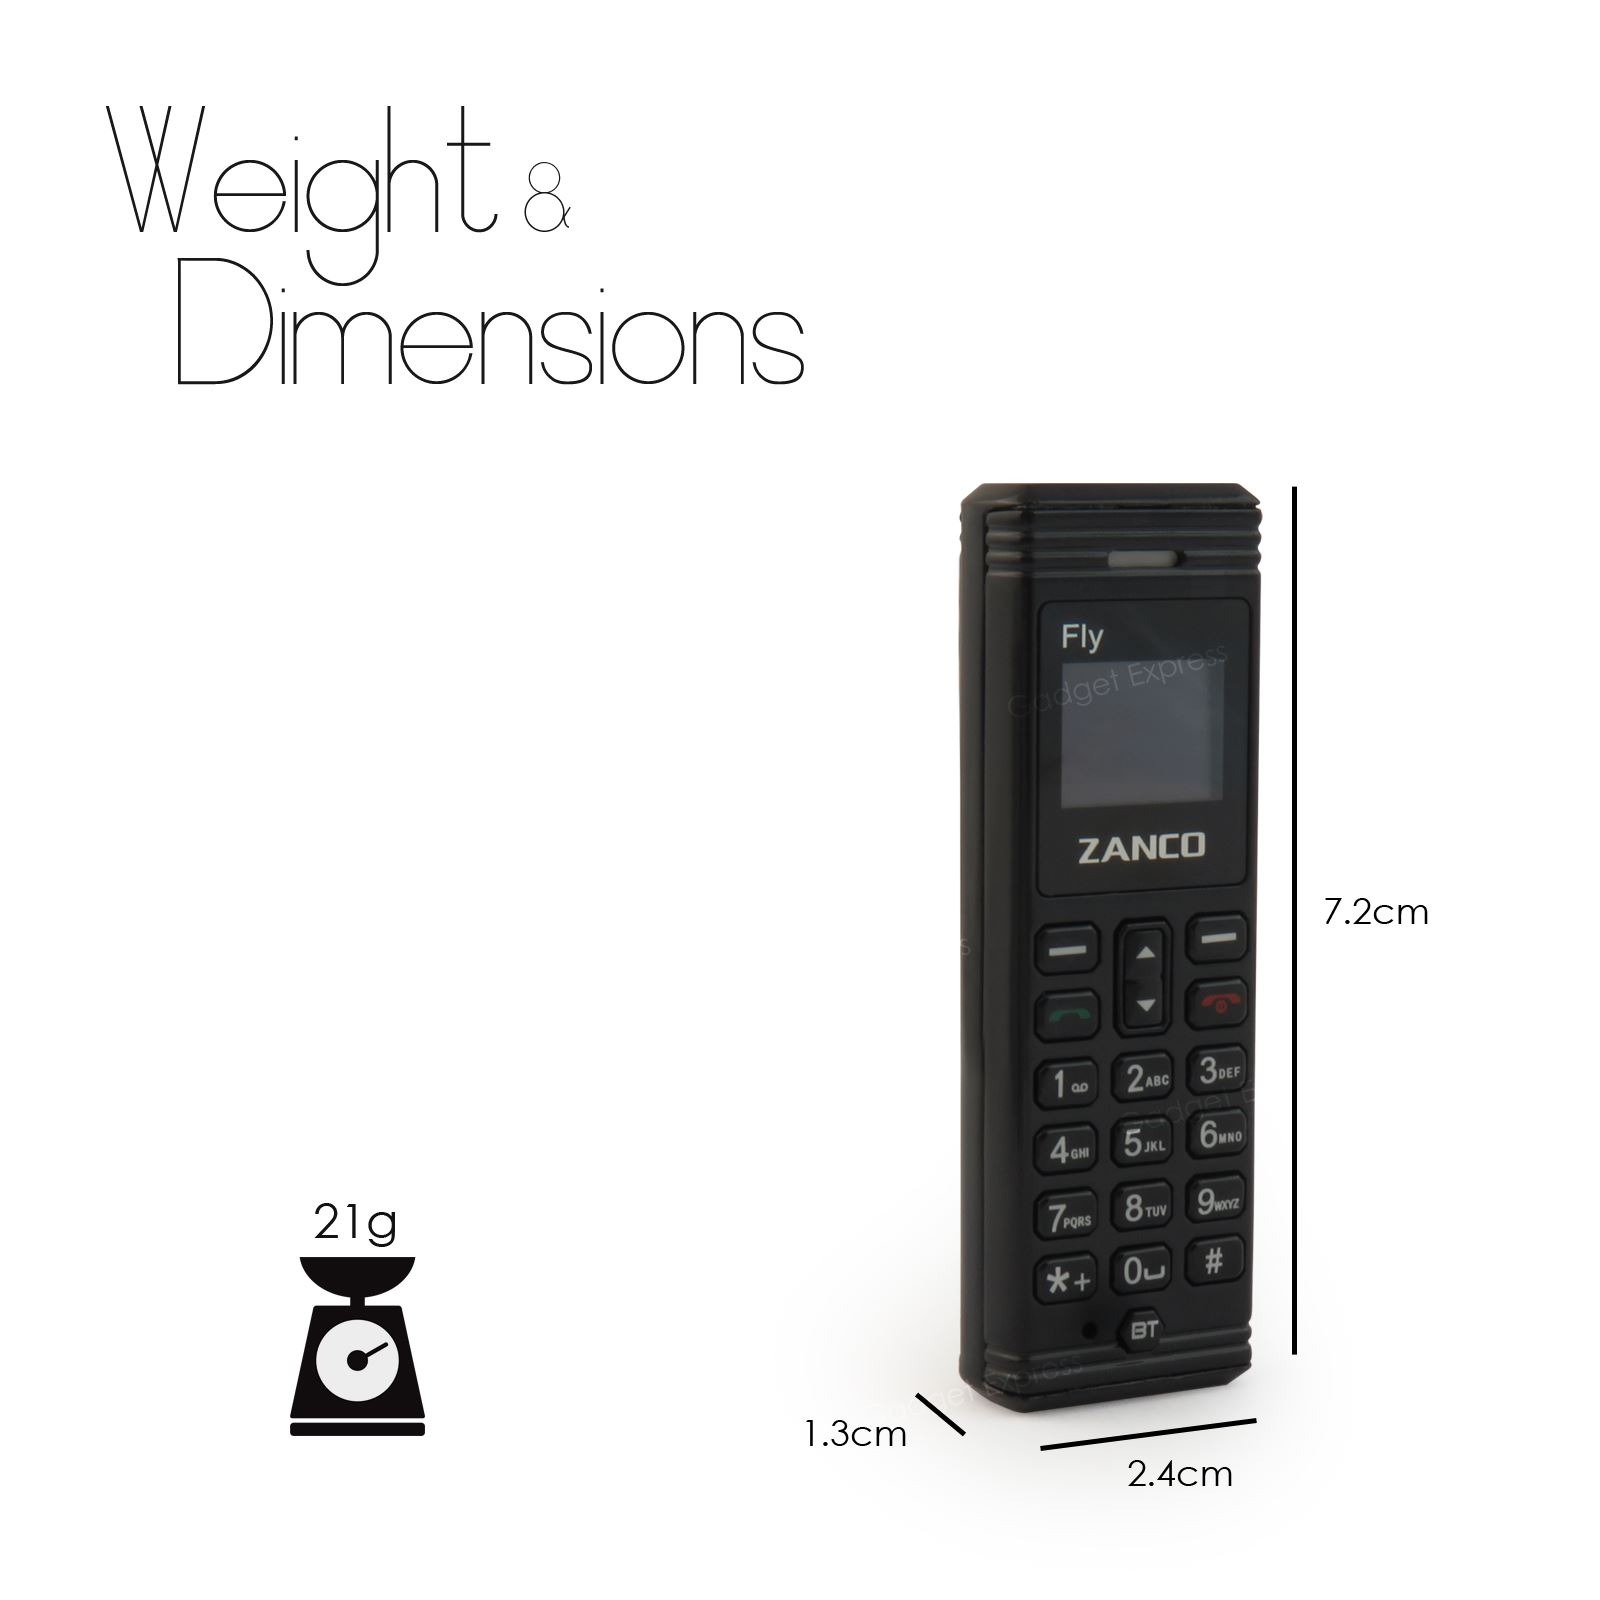 Zanco Fly Black Phone Worlds Smallest Phone with Voice ...